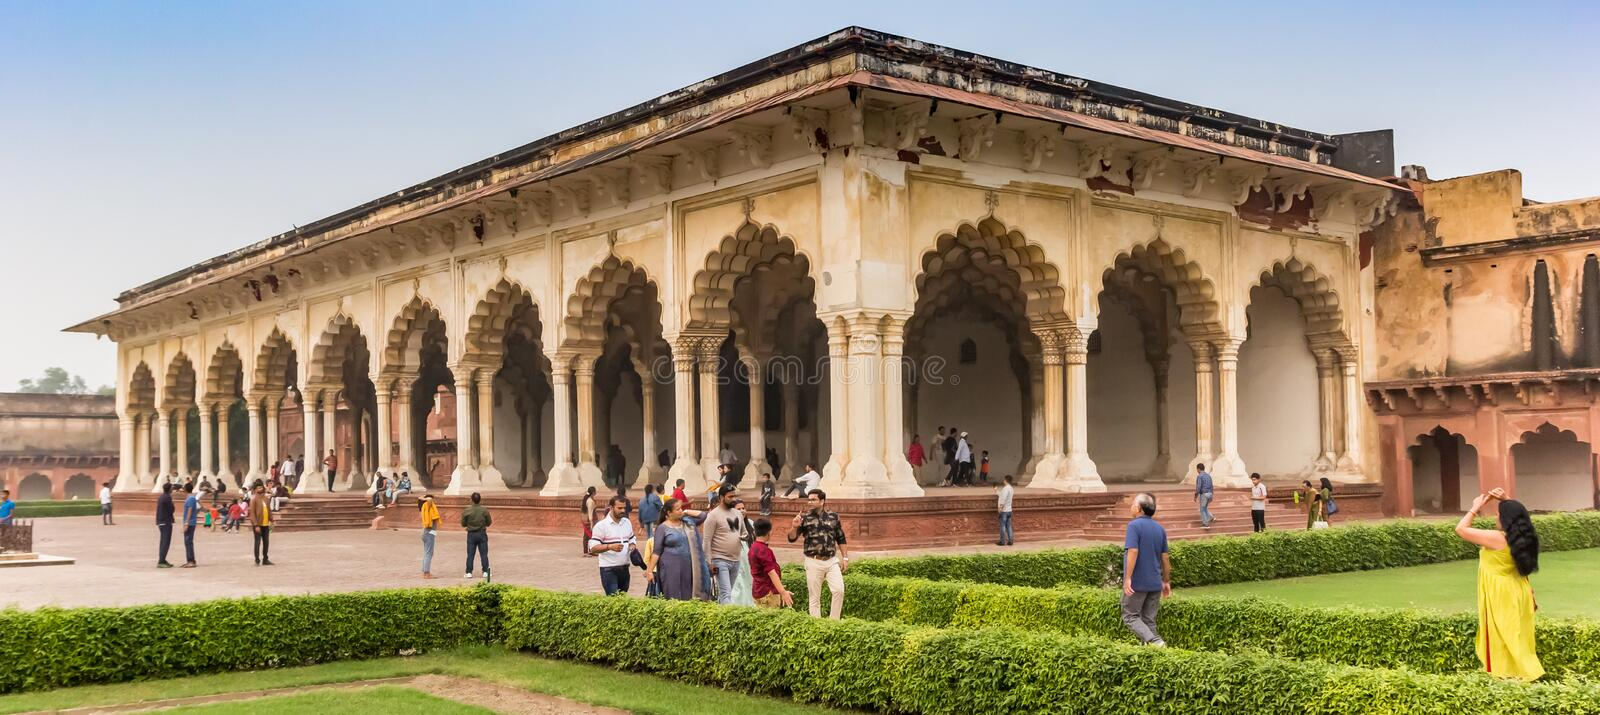 Panorama of the Anguri Bagh building in the Red Fort of Agra stock photos